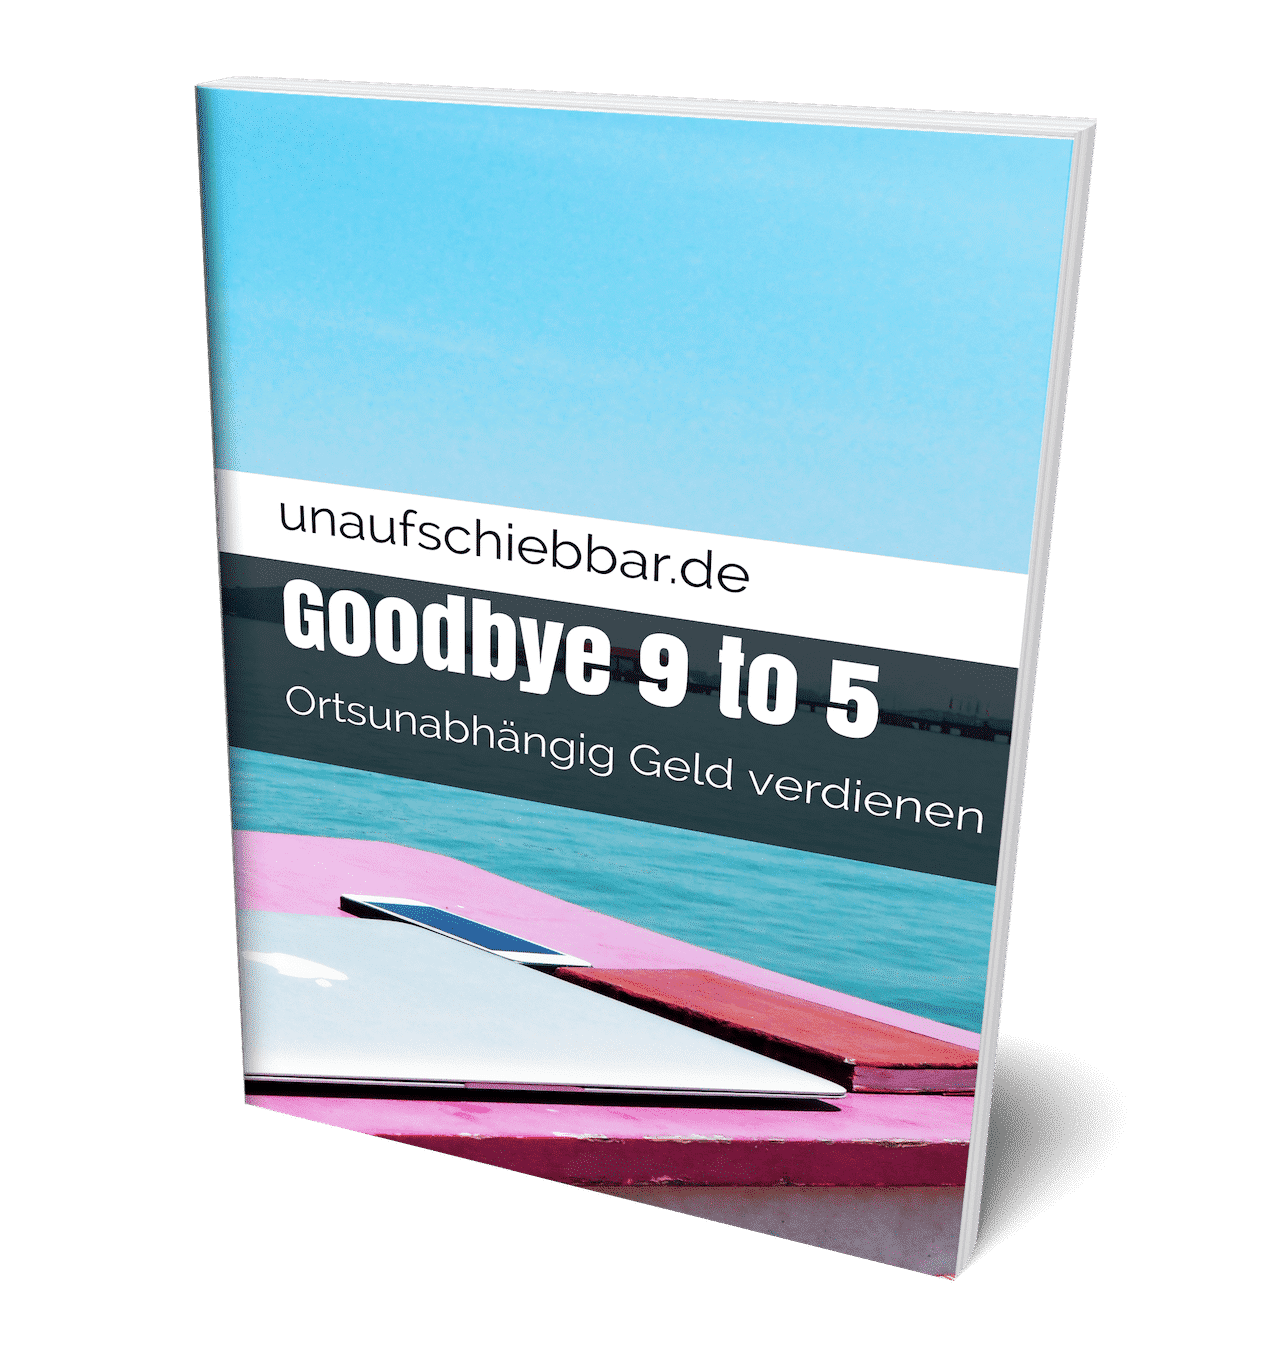 Goodbye 9 to 5 ortsunabhängig Geld verdienen - Cover - Free Plus Shipping Front